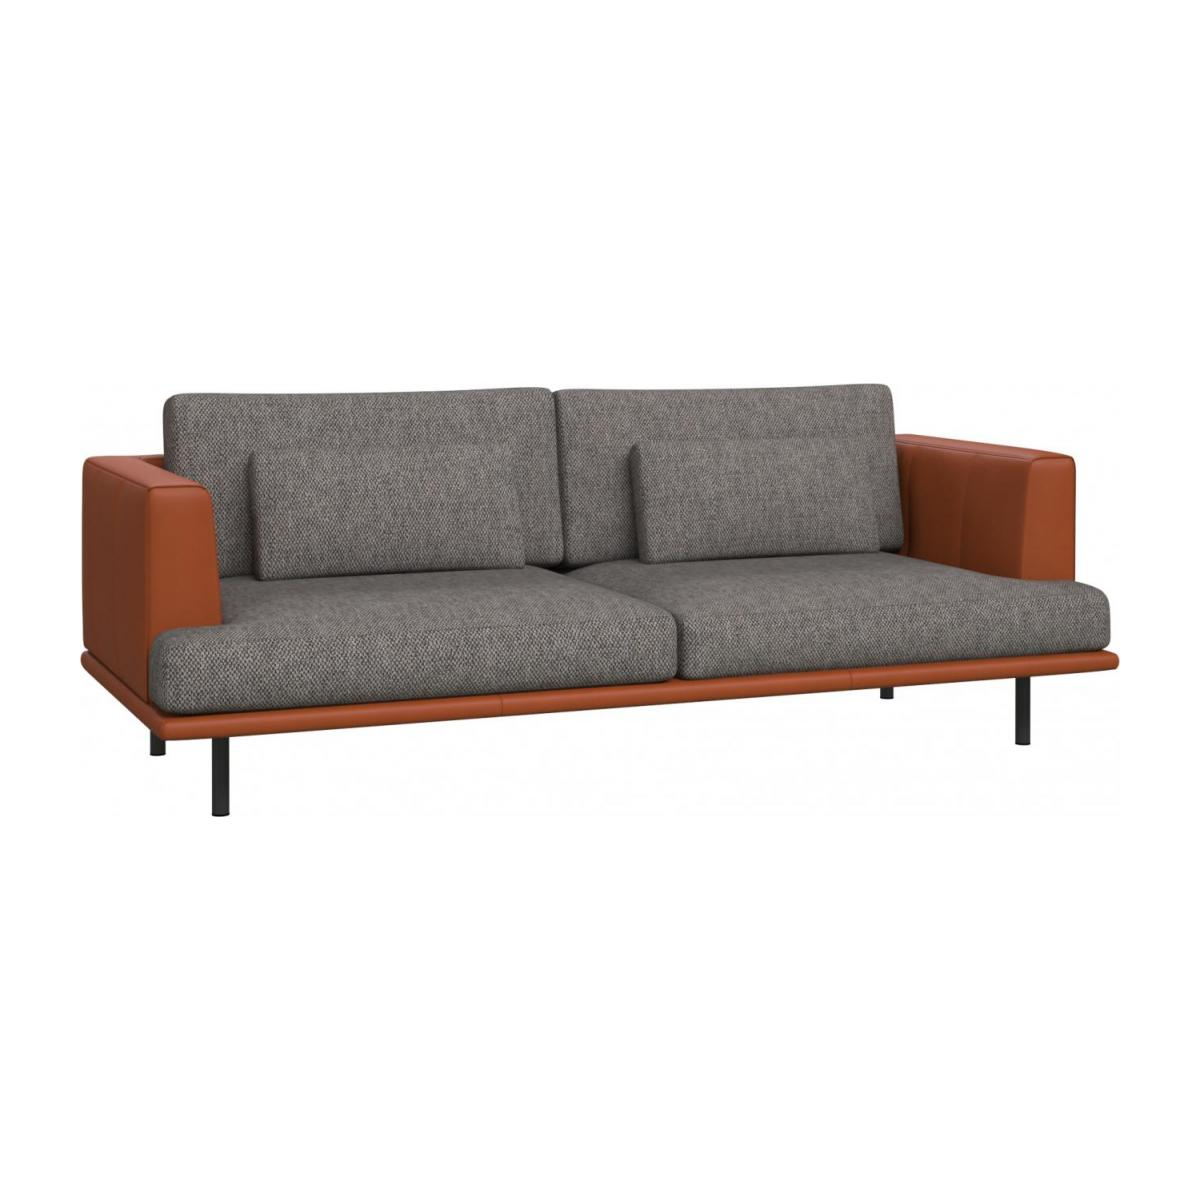 3 seater sofa in Bellagio fabric, night black with base and armrests in brown leather n°1